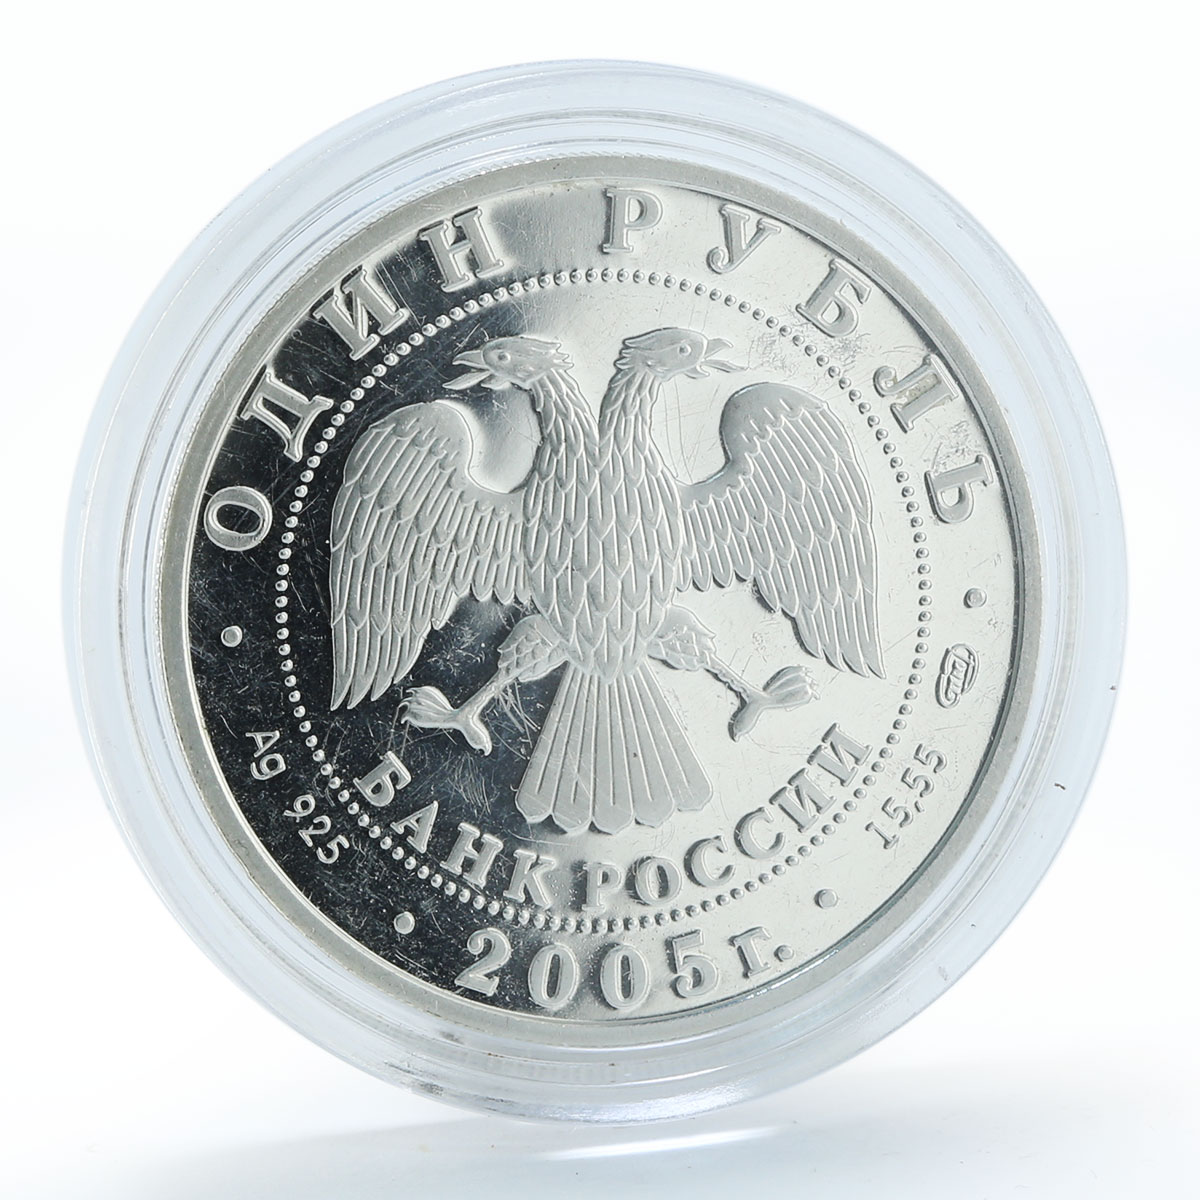 Russia 1 ruble Asiatic Wild Dog proof silver coin 2005